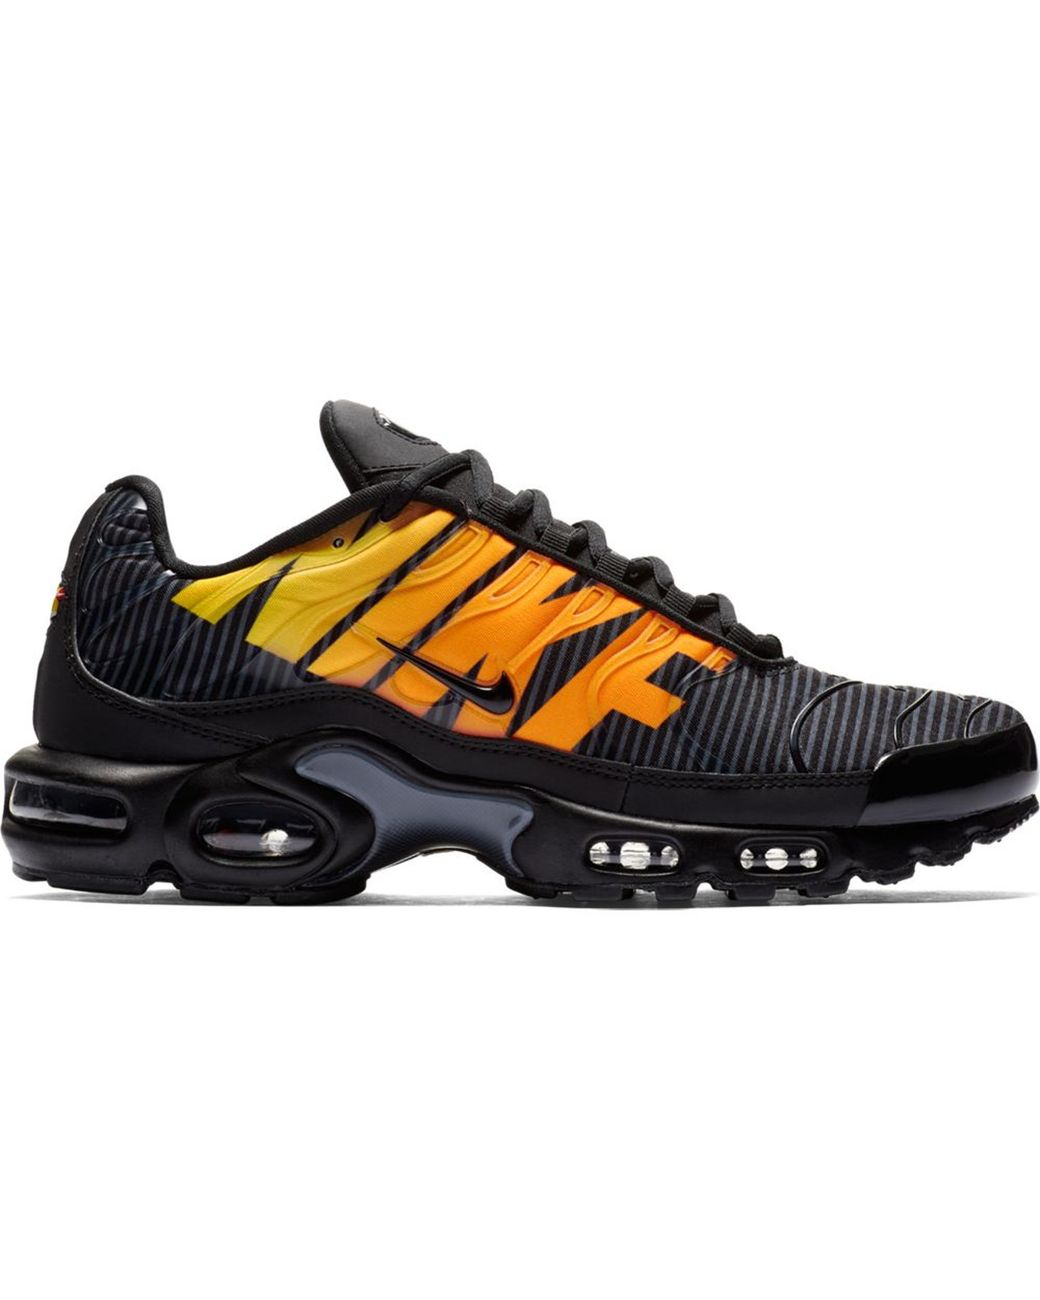 check out 88ee1 224b5 Men's Air Max Plus Mercurial Black Orange